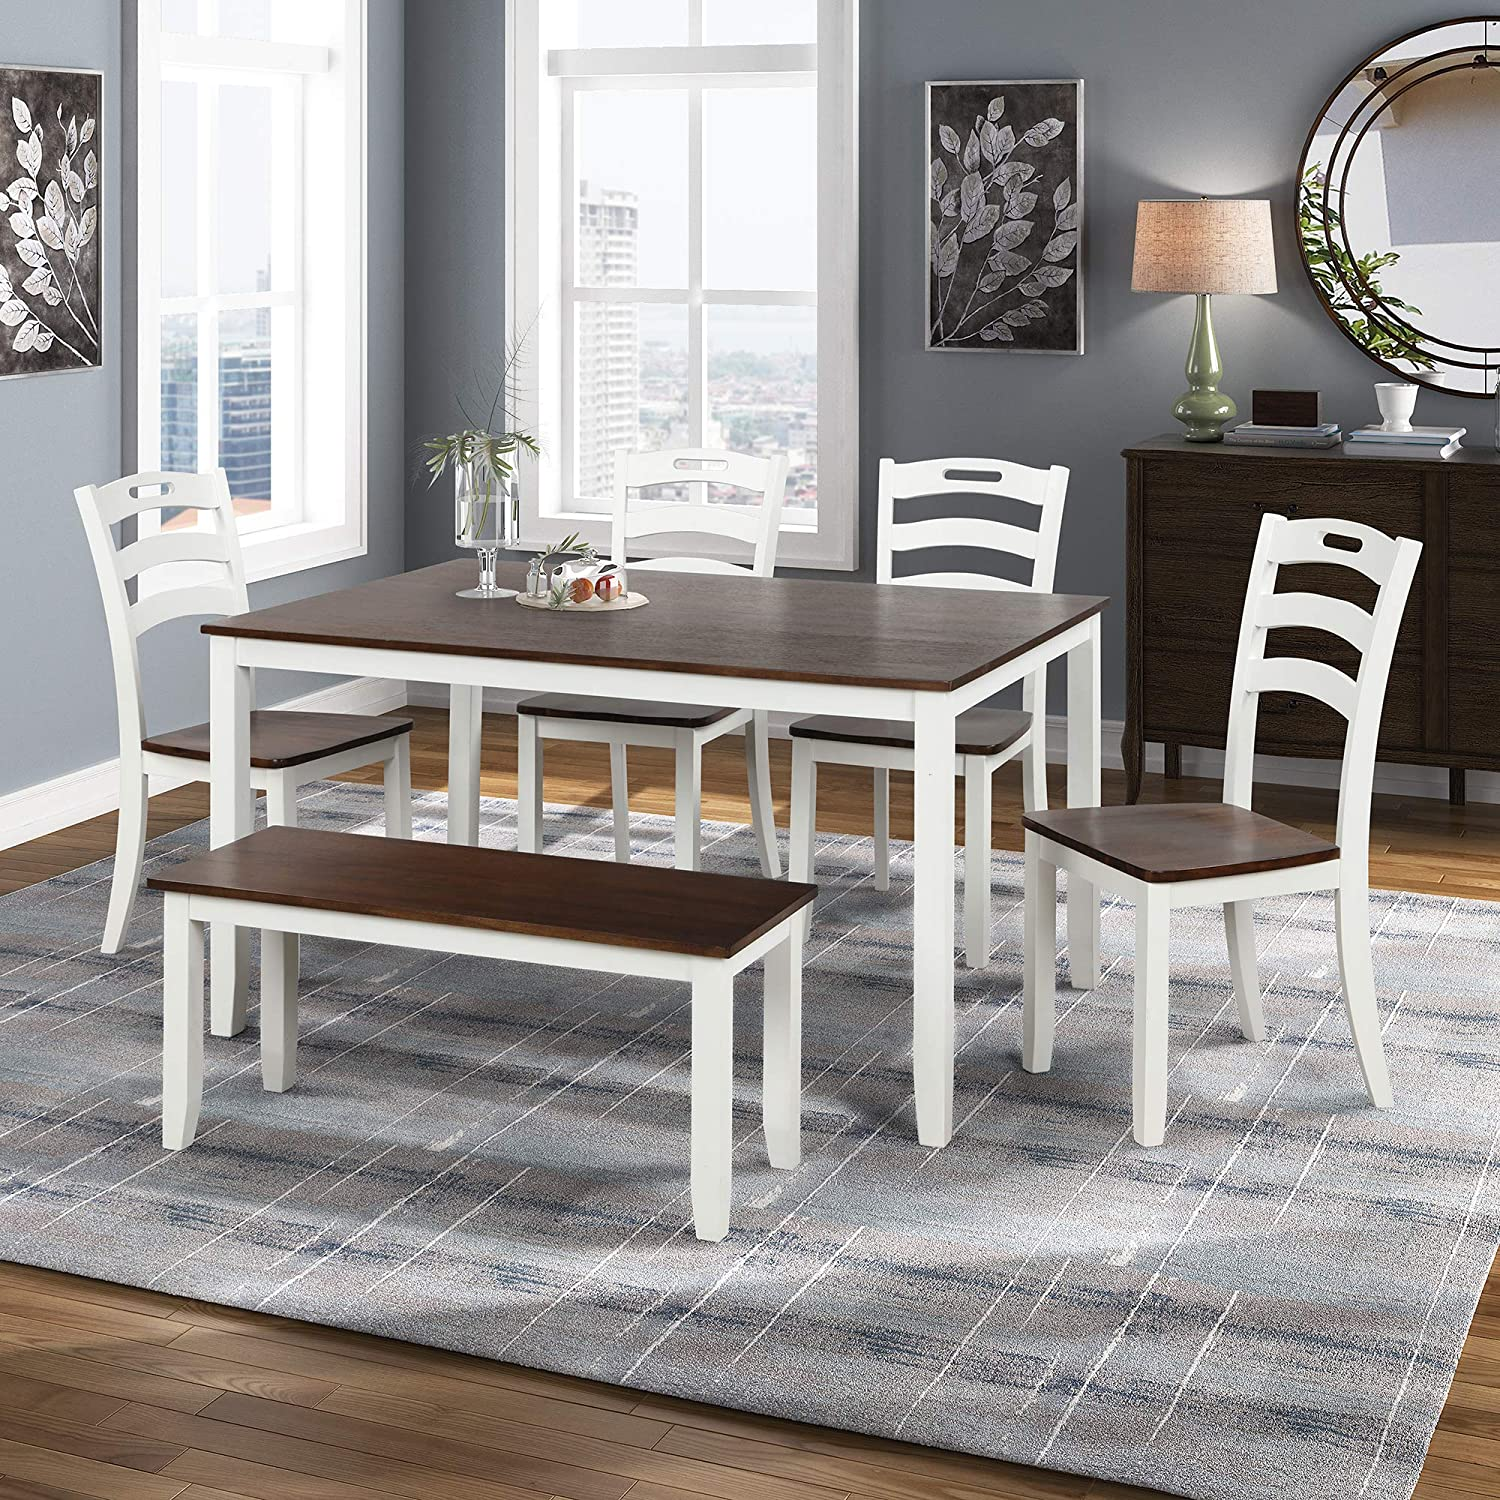 Merax Dining Table Sets, 9 Piece Wood Kitchen Table Set, Home Furniture  Table Set with Chairs & Bench White + Cherry